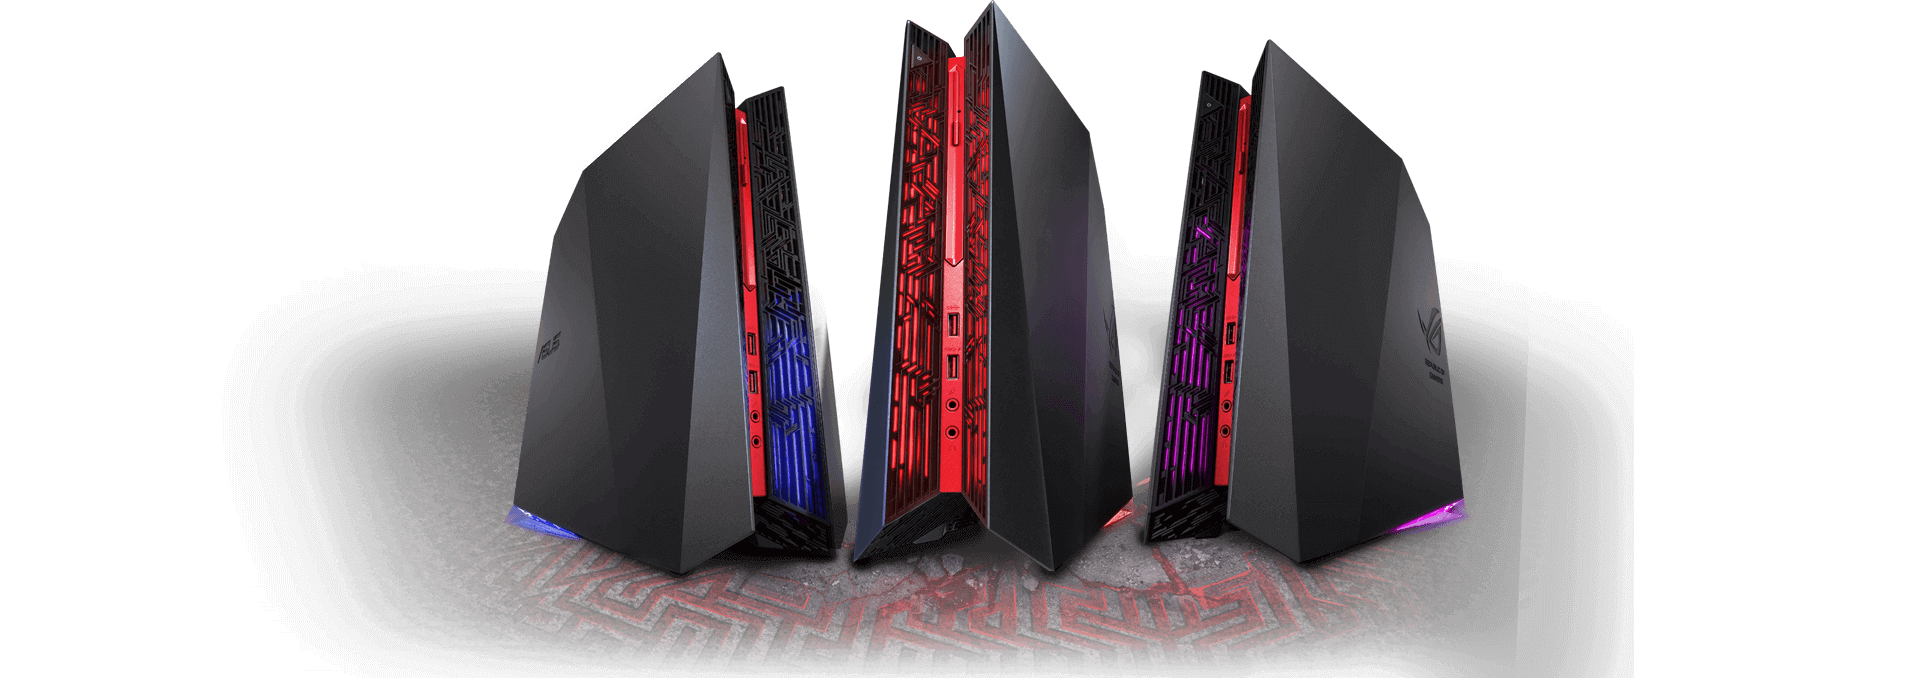 Rog G20cb Tower Pcs Asus Usa